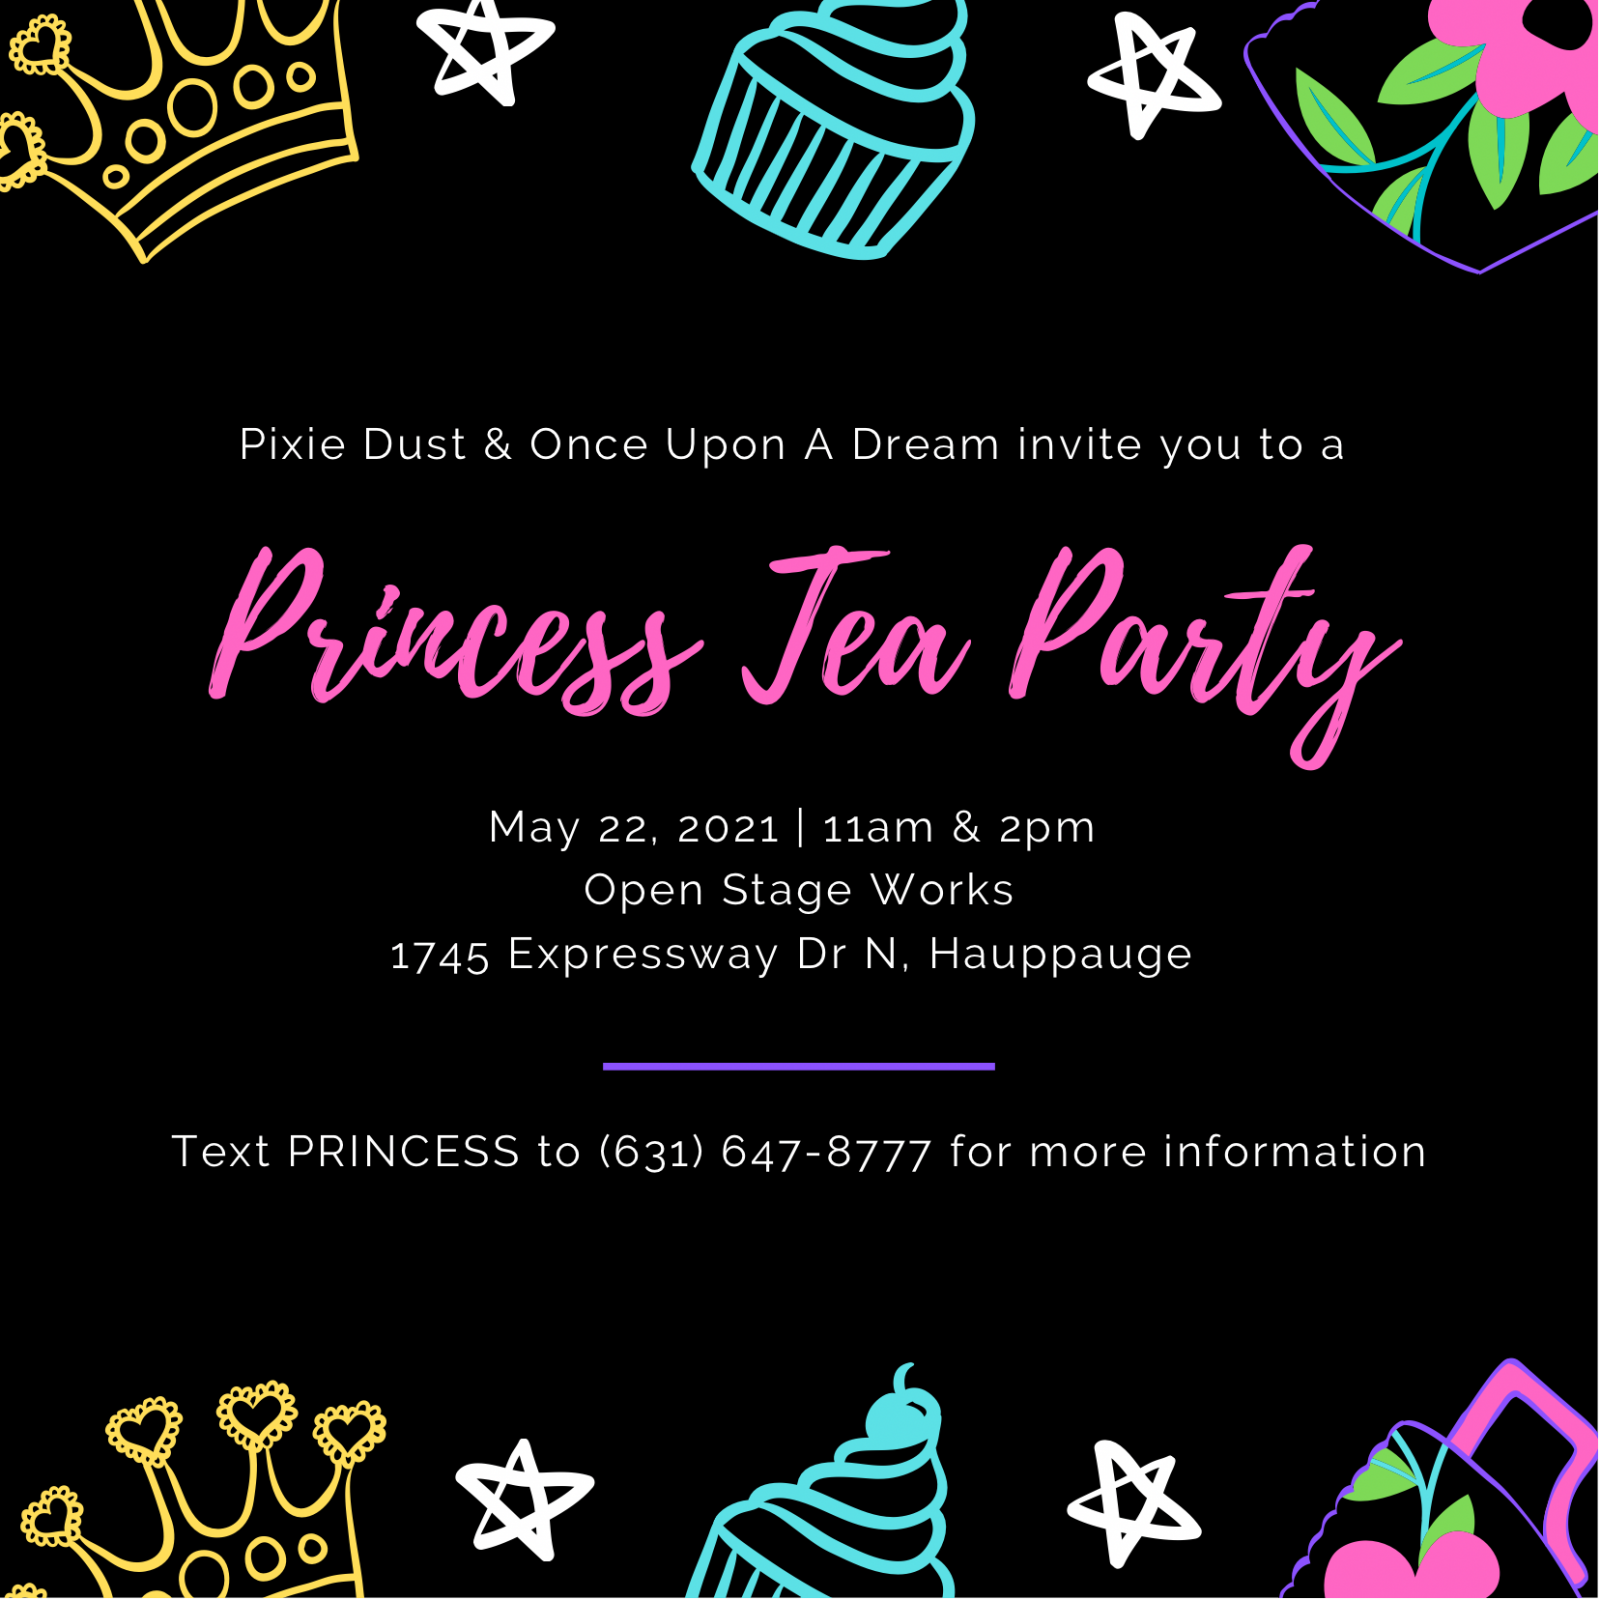 Princess Tea Party Sibling Ticket